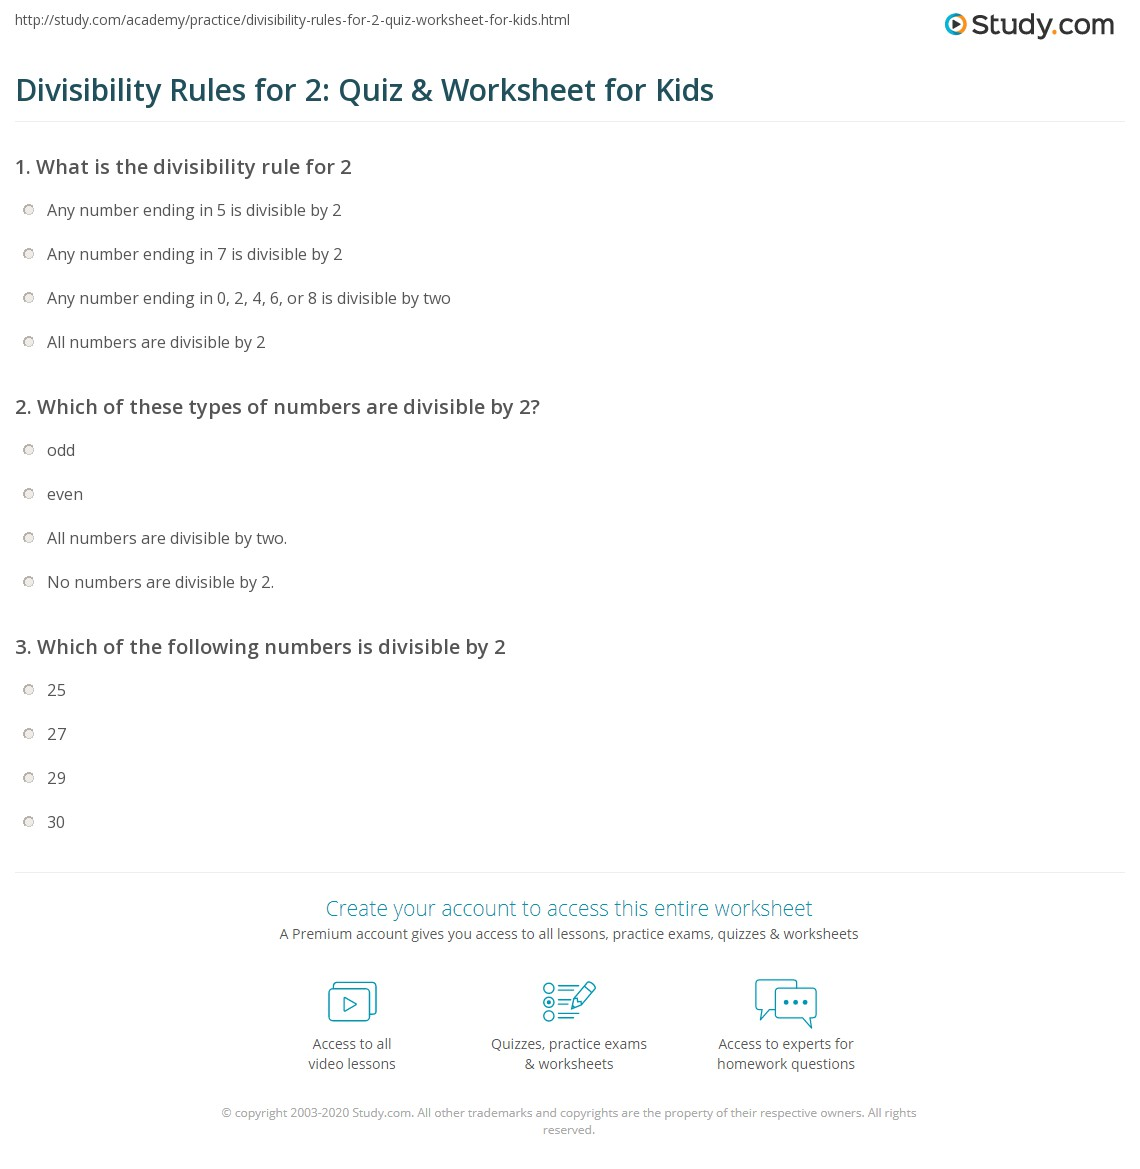 Worksheets Divisibility Rules Worksheets divisibility rules for 2 quiz worksheet kids study com print lesson worksheet